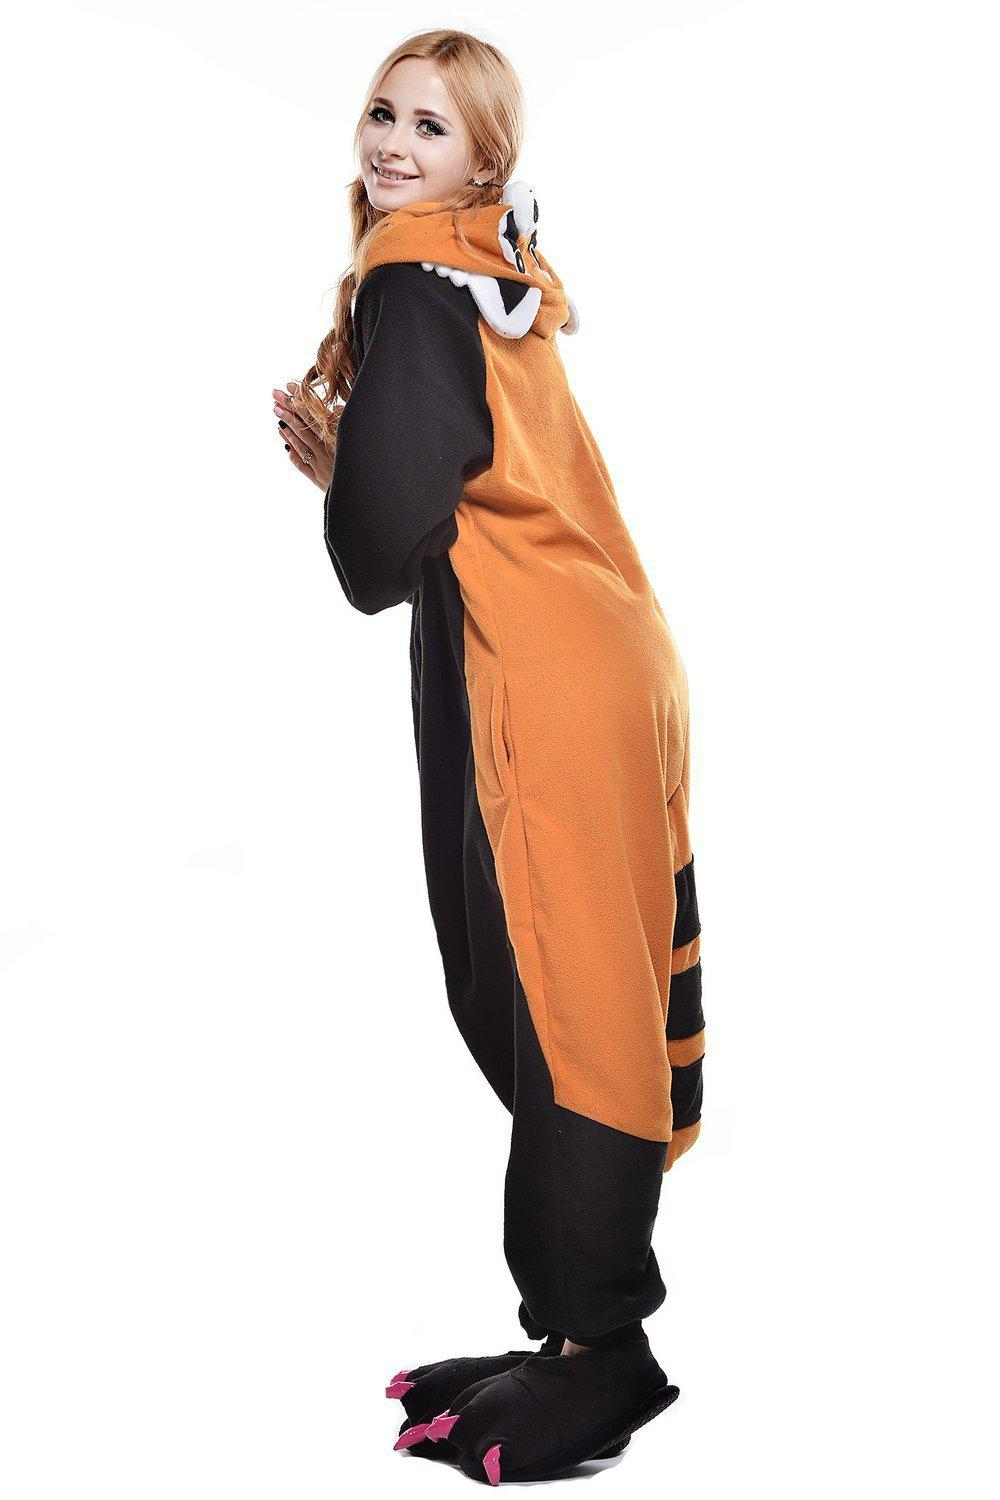 Image of: Raccoon Kigurumi Adult Sizing Onesieshow Red Panda Onesie Fleece Belife Animal Onesie For Kids And Adults